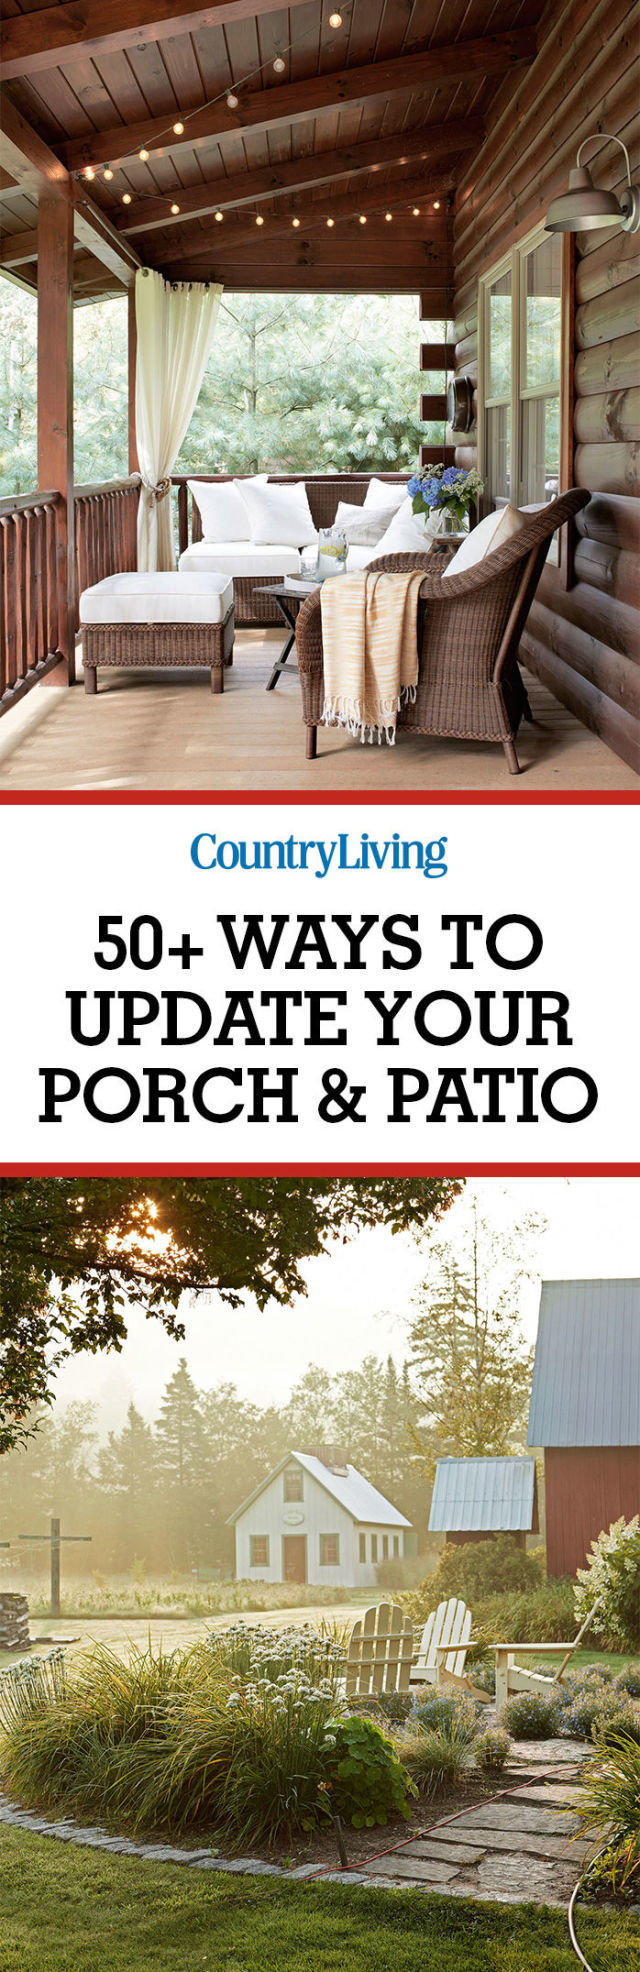 65+ best patio designs for 2017 - ideas for front porch and patio ... - Backyard Patio Decorating Ideas